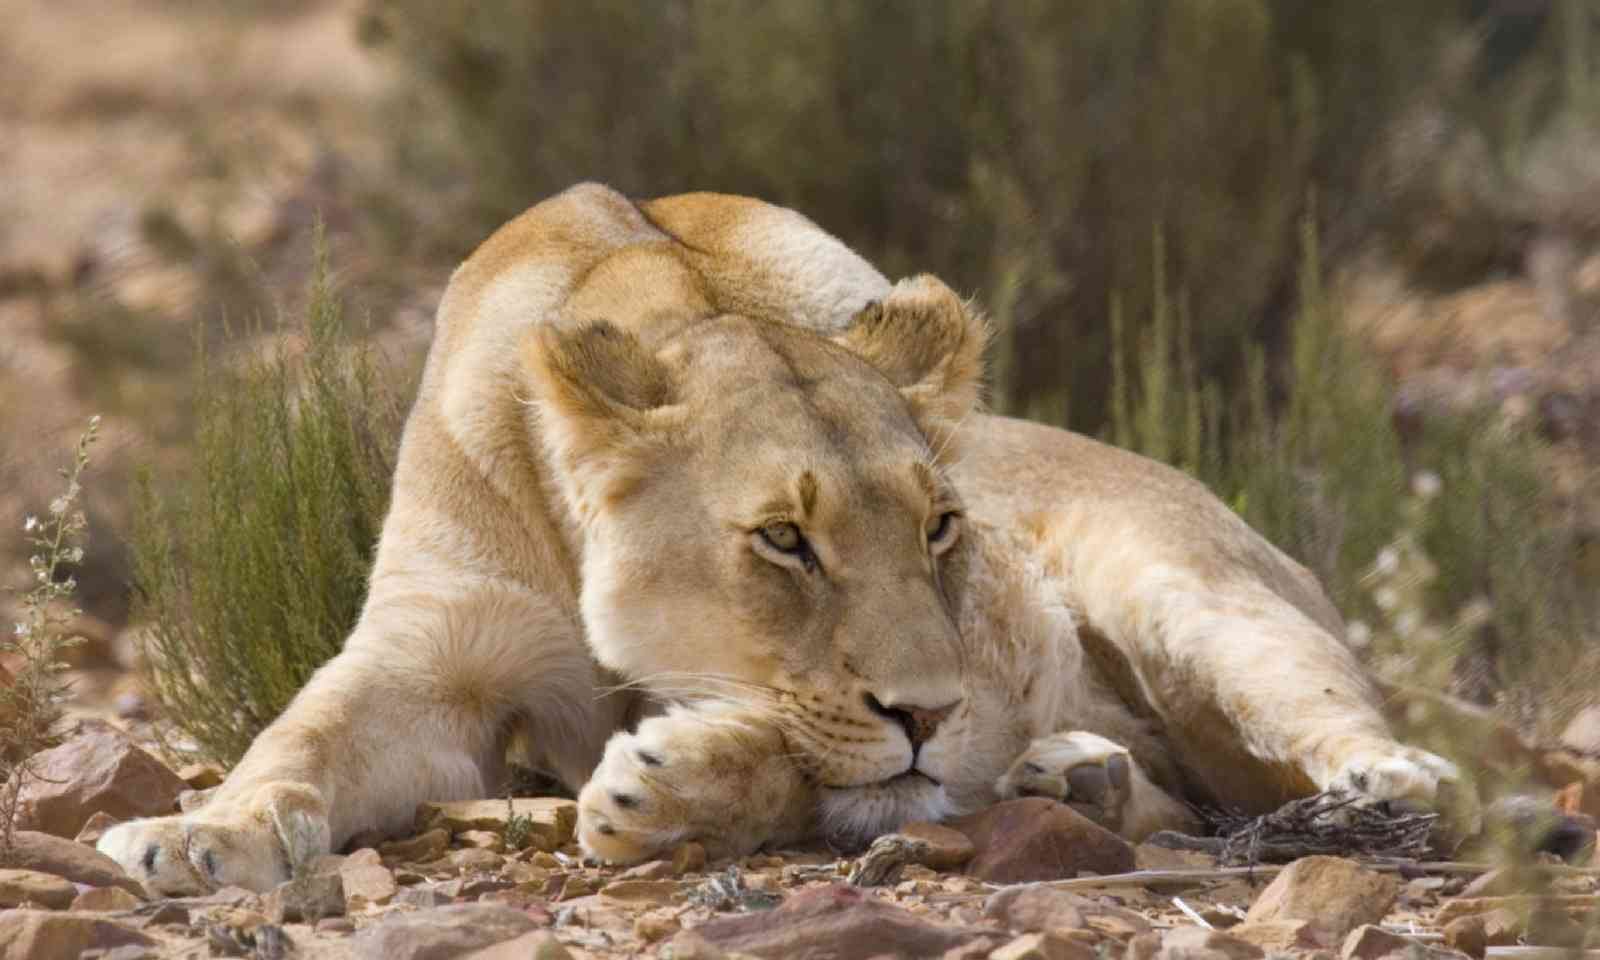 Female Lion sunbathes in afternoon sun, South Africa (Shutterstock)